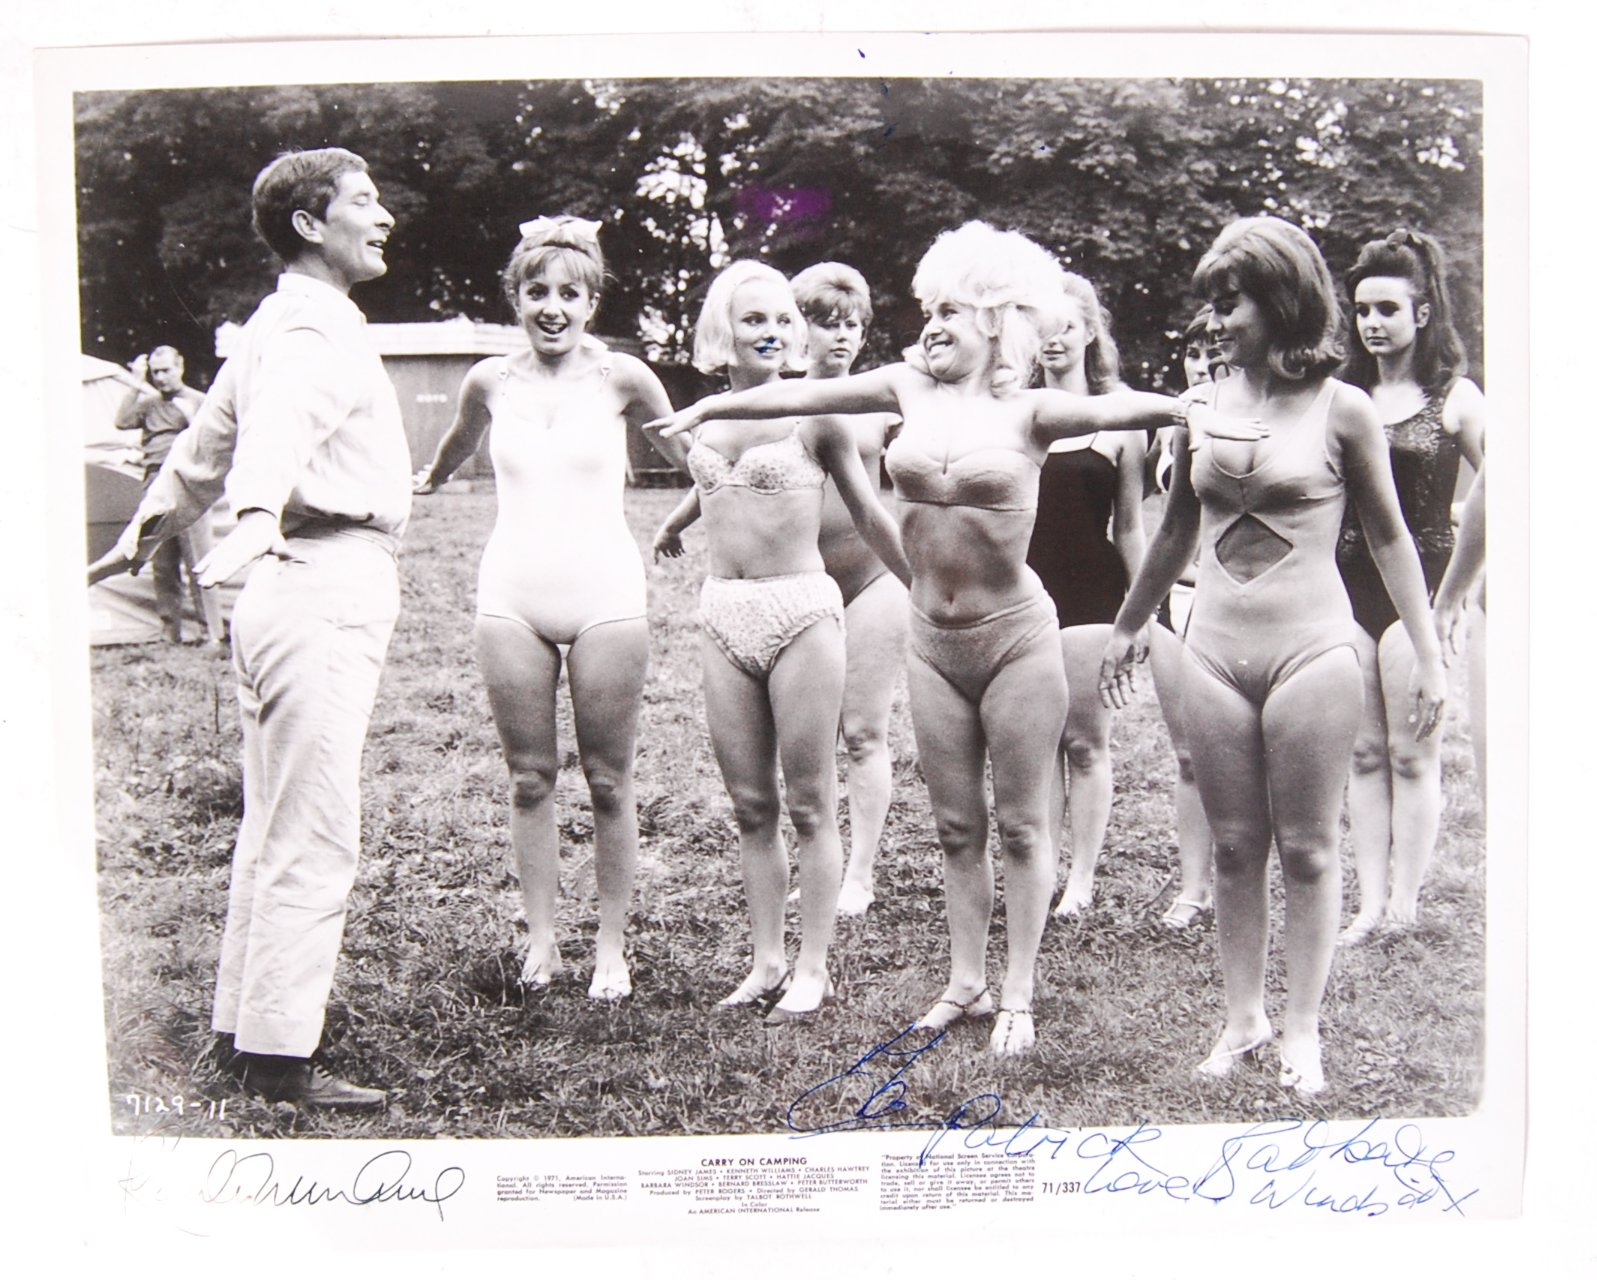 Lot 35 - RARE ' CARRY ON CAMPING ' MOVIE STILL WITH AUTOGRA